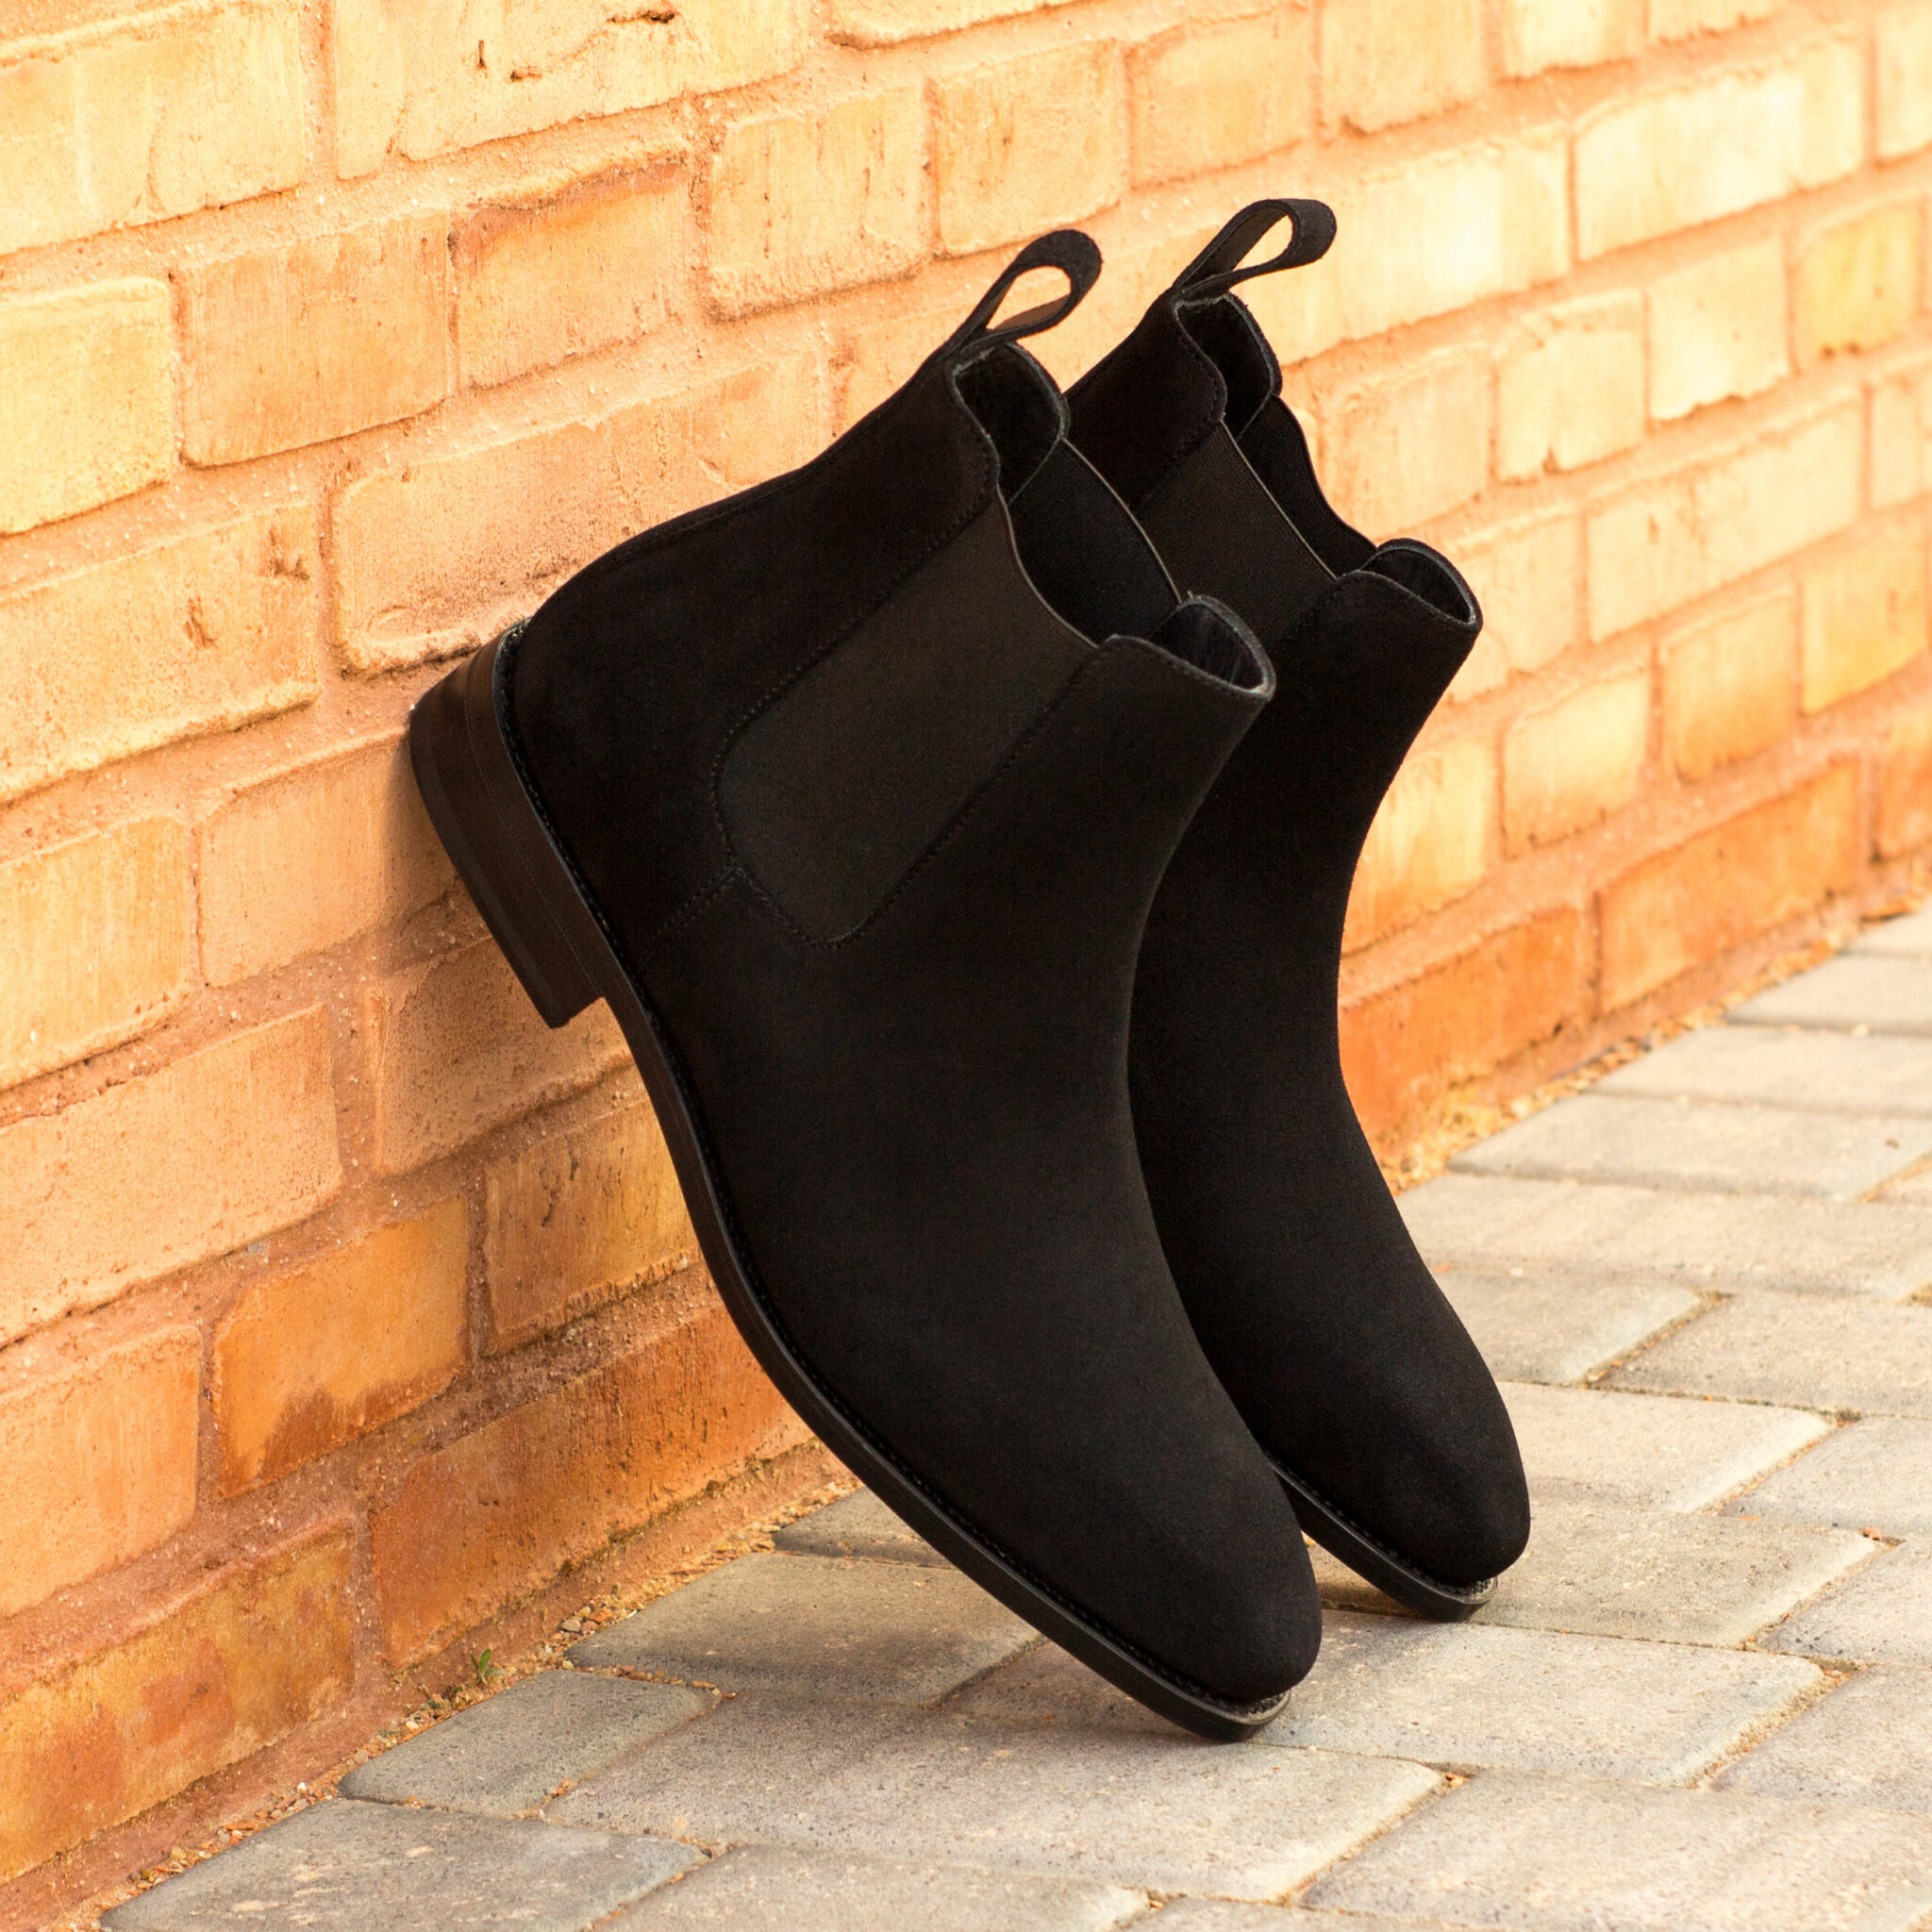 Chelsea boot black lux suede : 260€